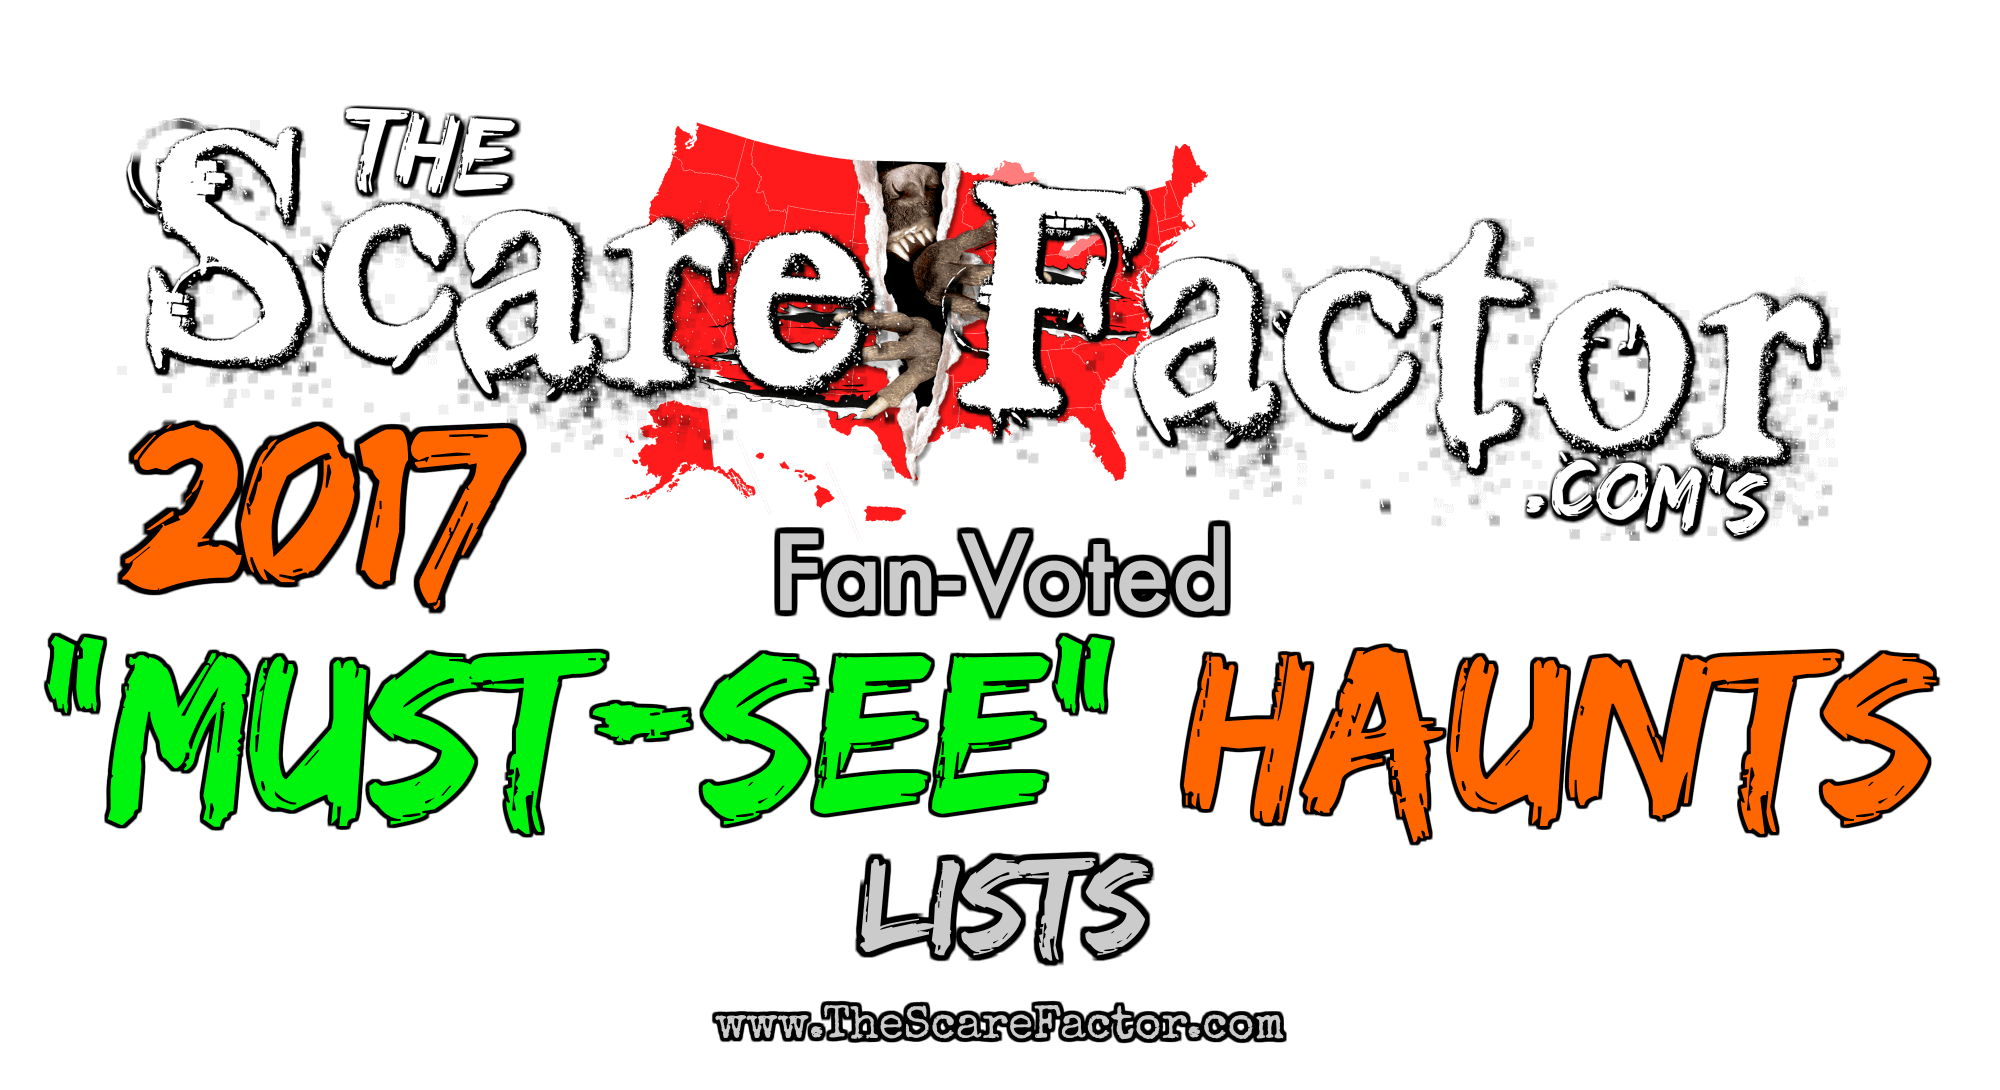 Scare-Factor-2017-Top-Must-See-Haunted-Houses-List-s.png.pagespeed.ce.W34Cqbkw__